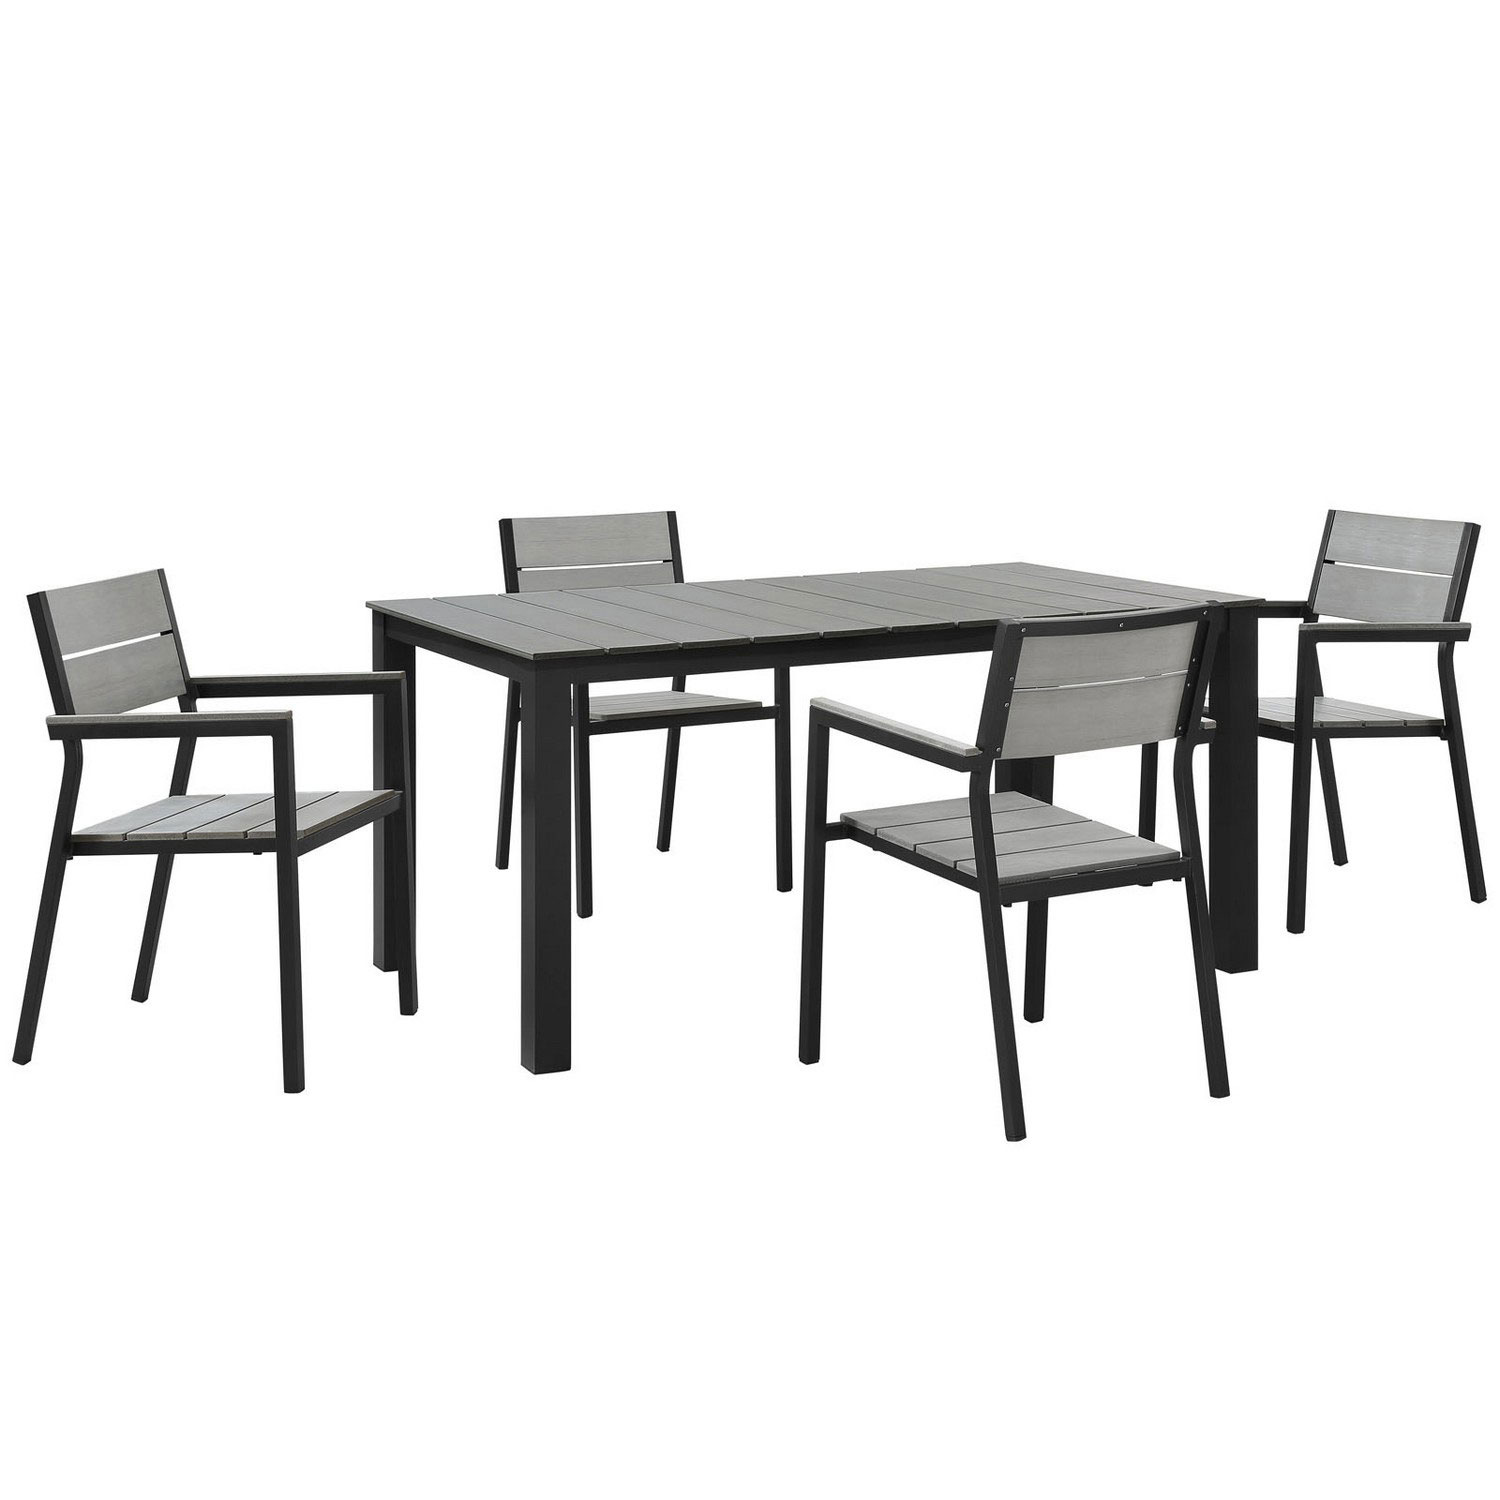 Modway Maine 5 Piece Outdoor Patio Dining Set - Brown/Gray